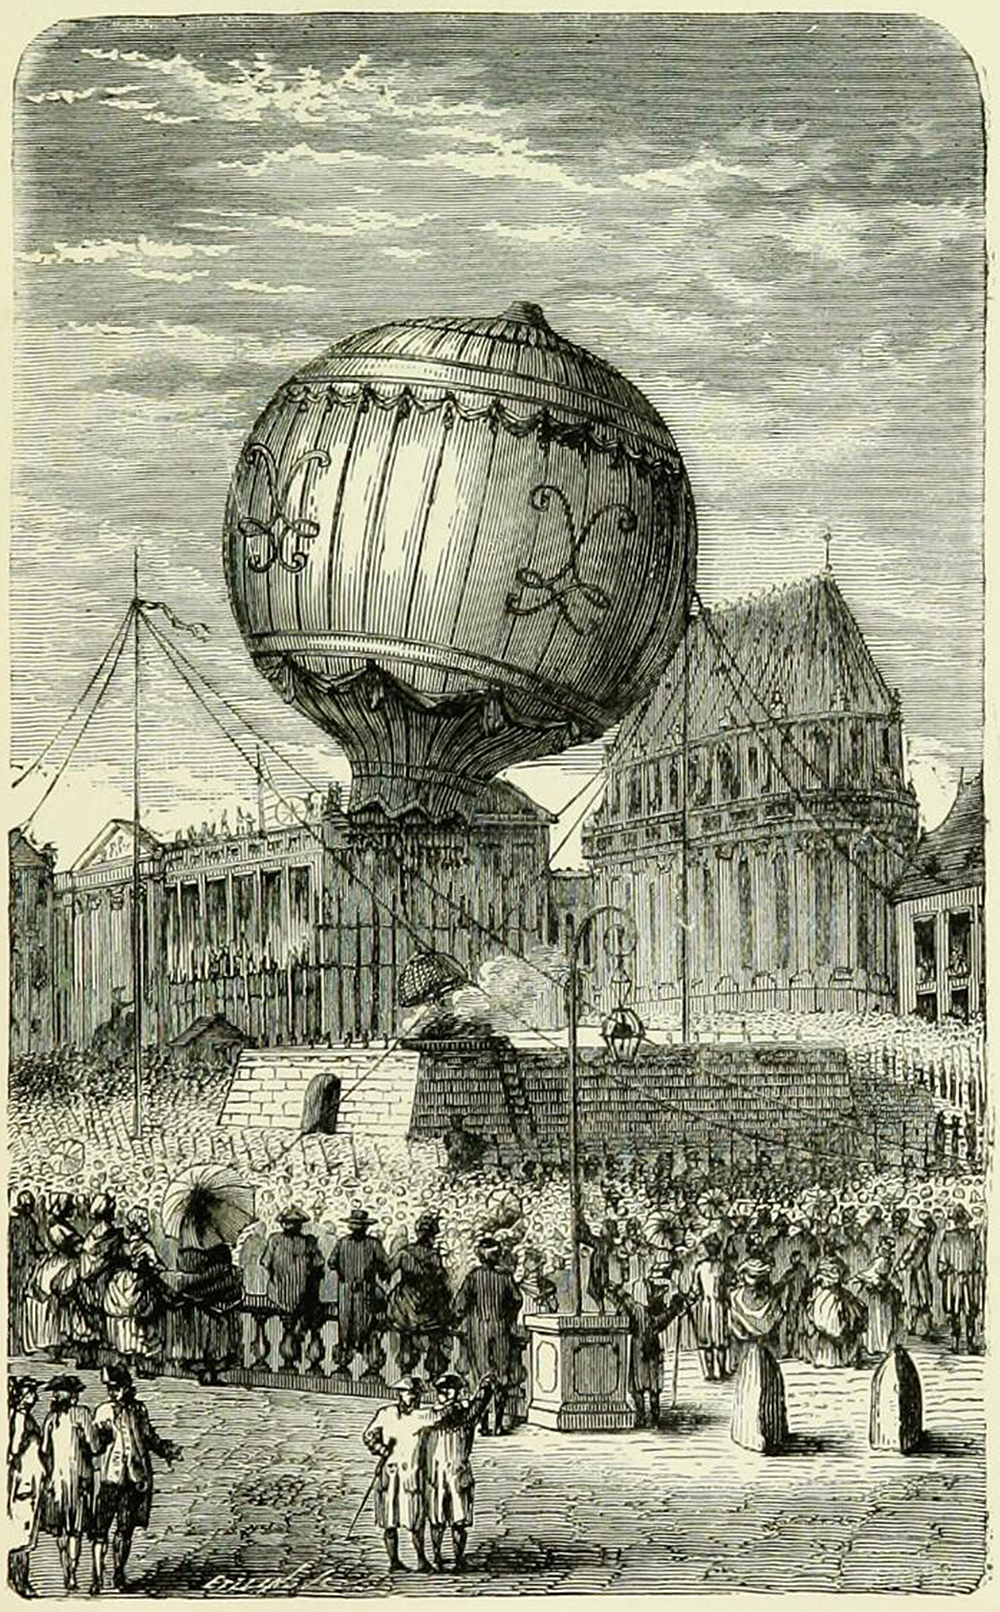 Balloon ascent at Versailles, illustration from Wonderful Balloon Ascents: or, the Conquest of the Skies; a History of Balloons and Balloon Voyages, 1888. Wellcome Collection.